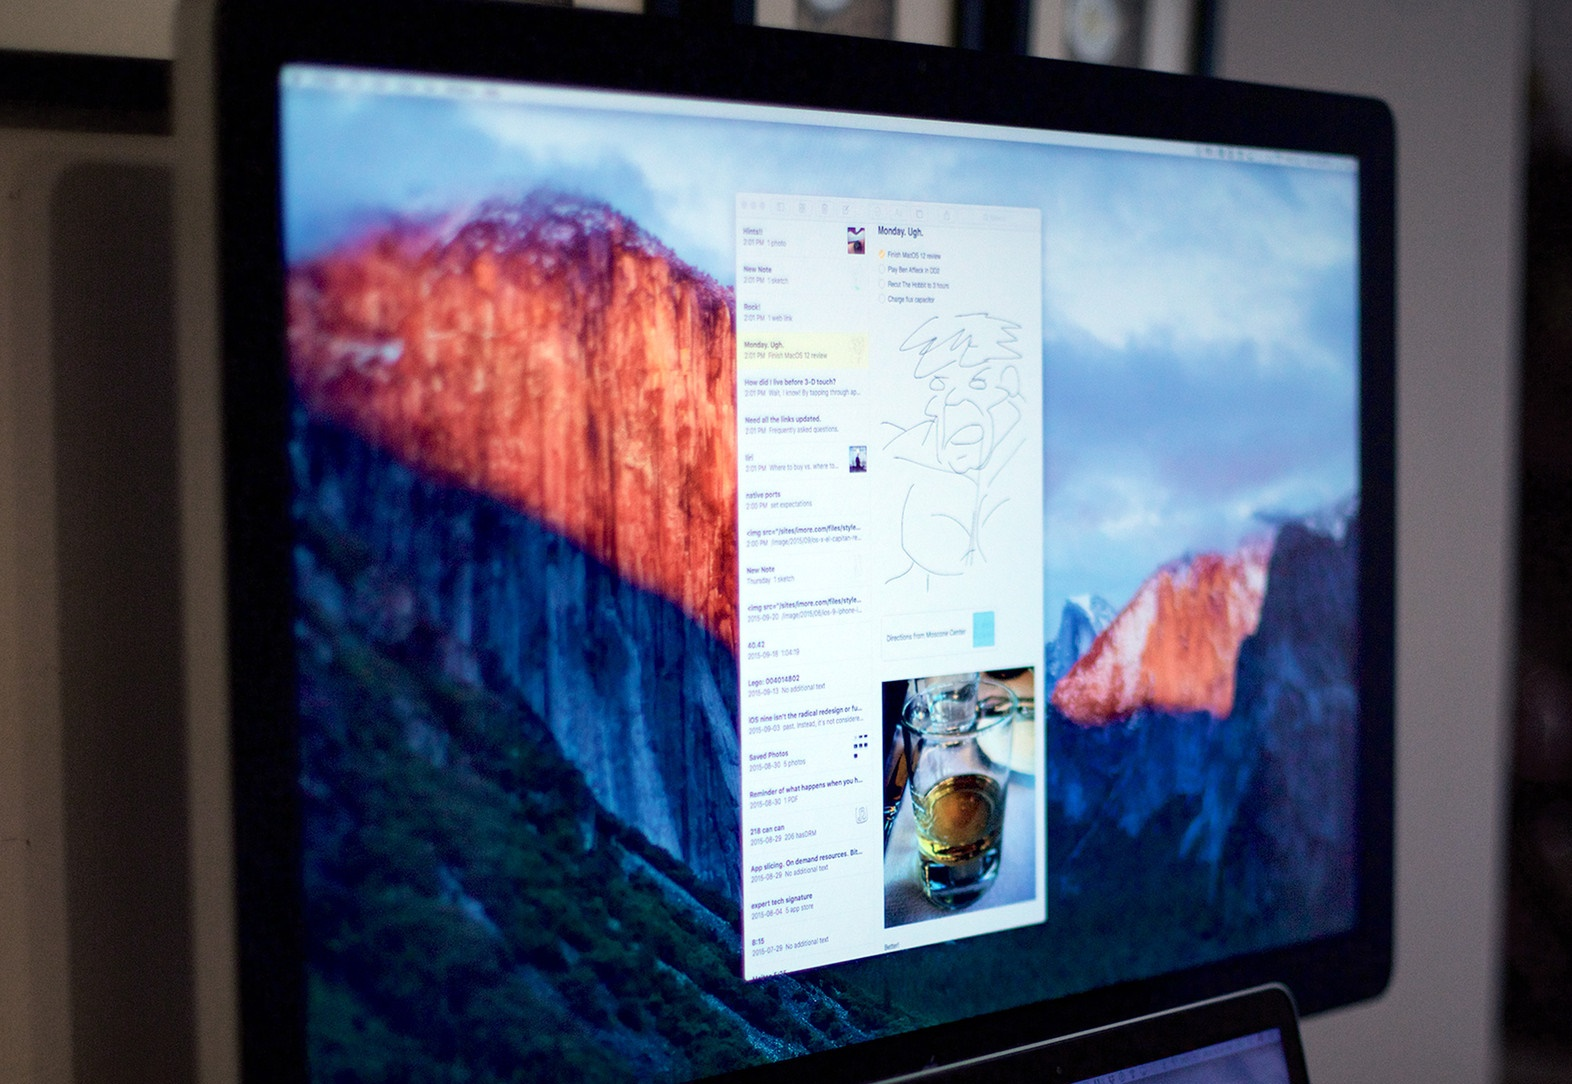 OS X 10.11.4 El Capitan Beta 2 available for developers